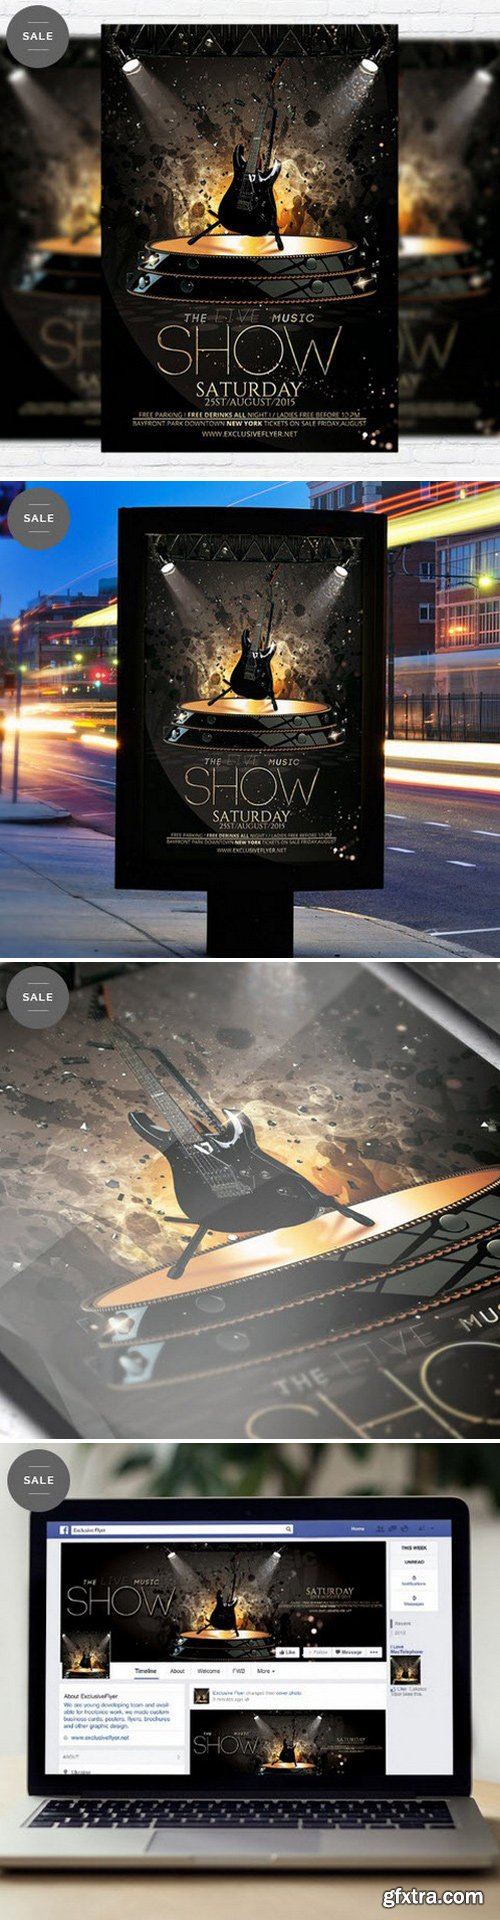 The Live Music Show – Flyer Template + Facebook Cover